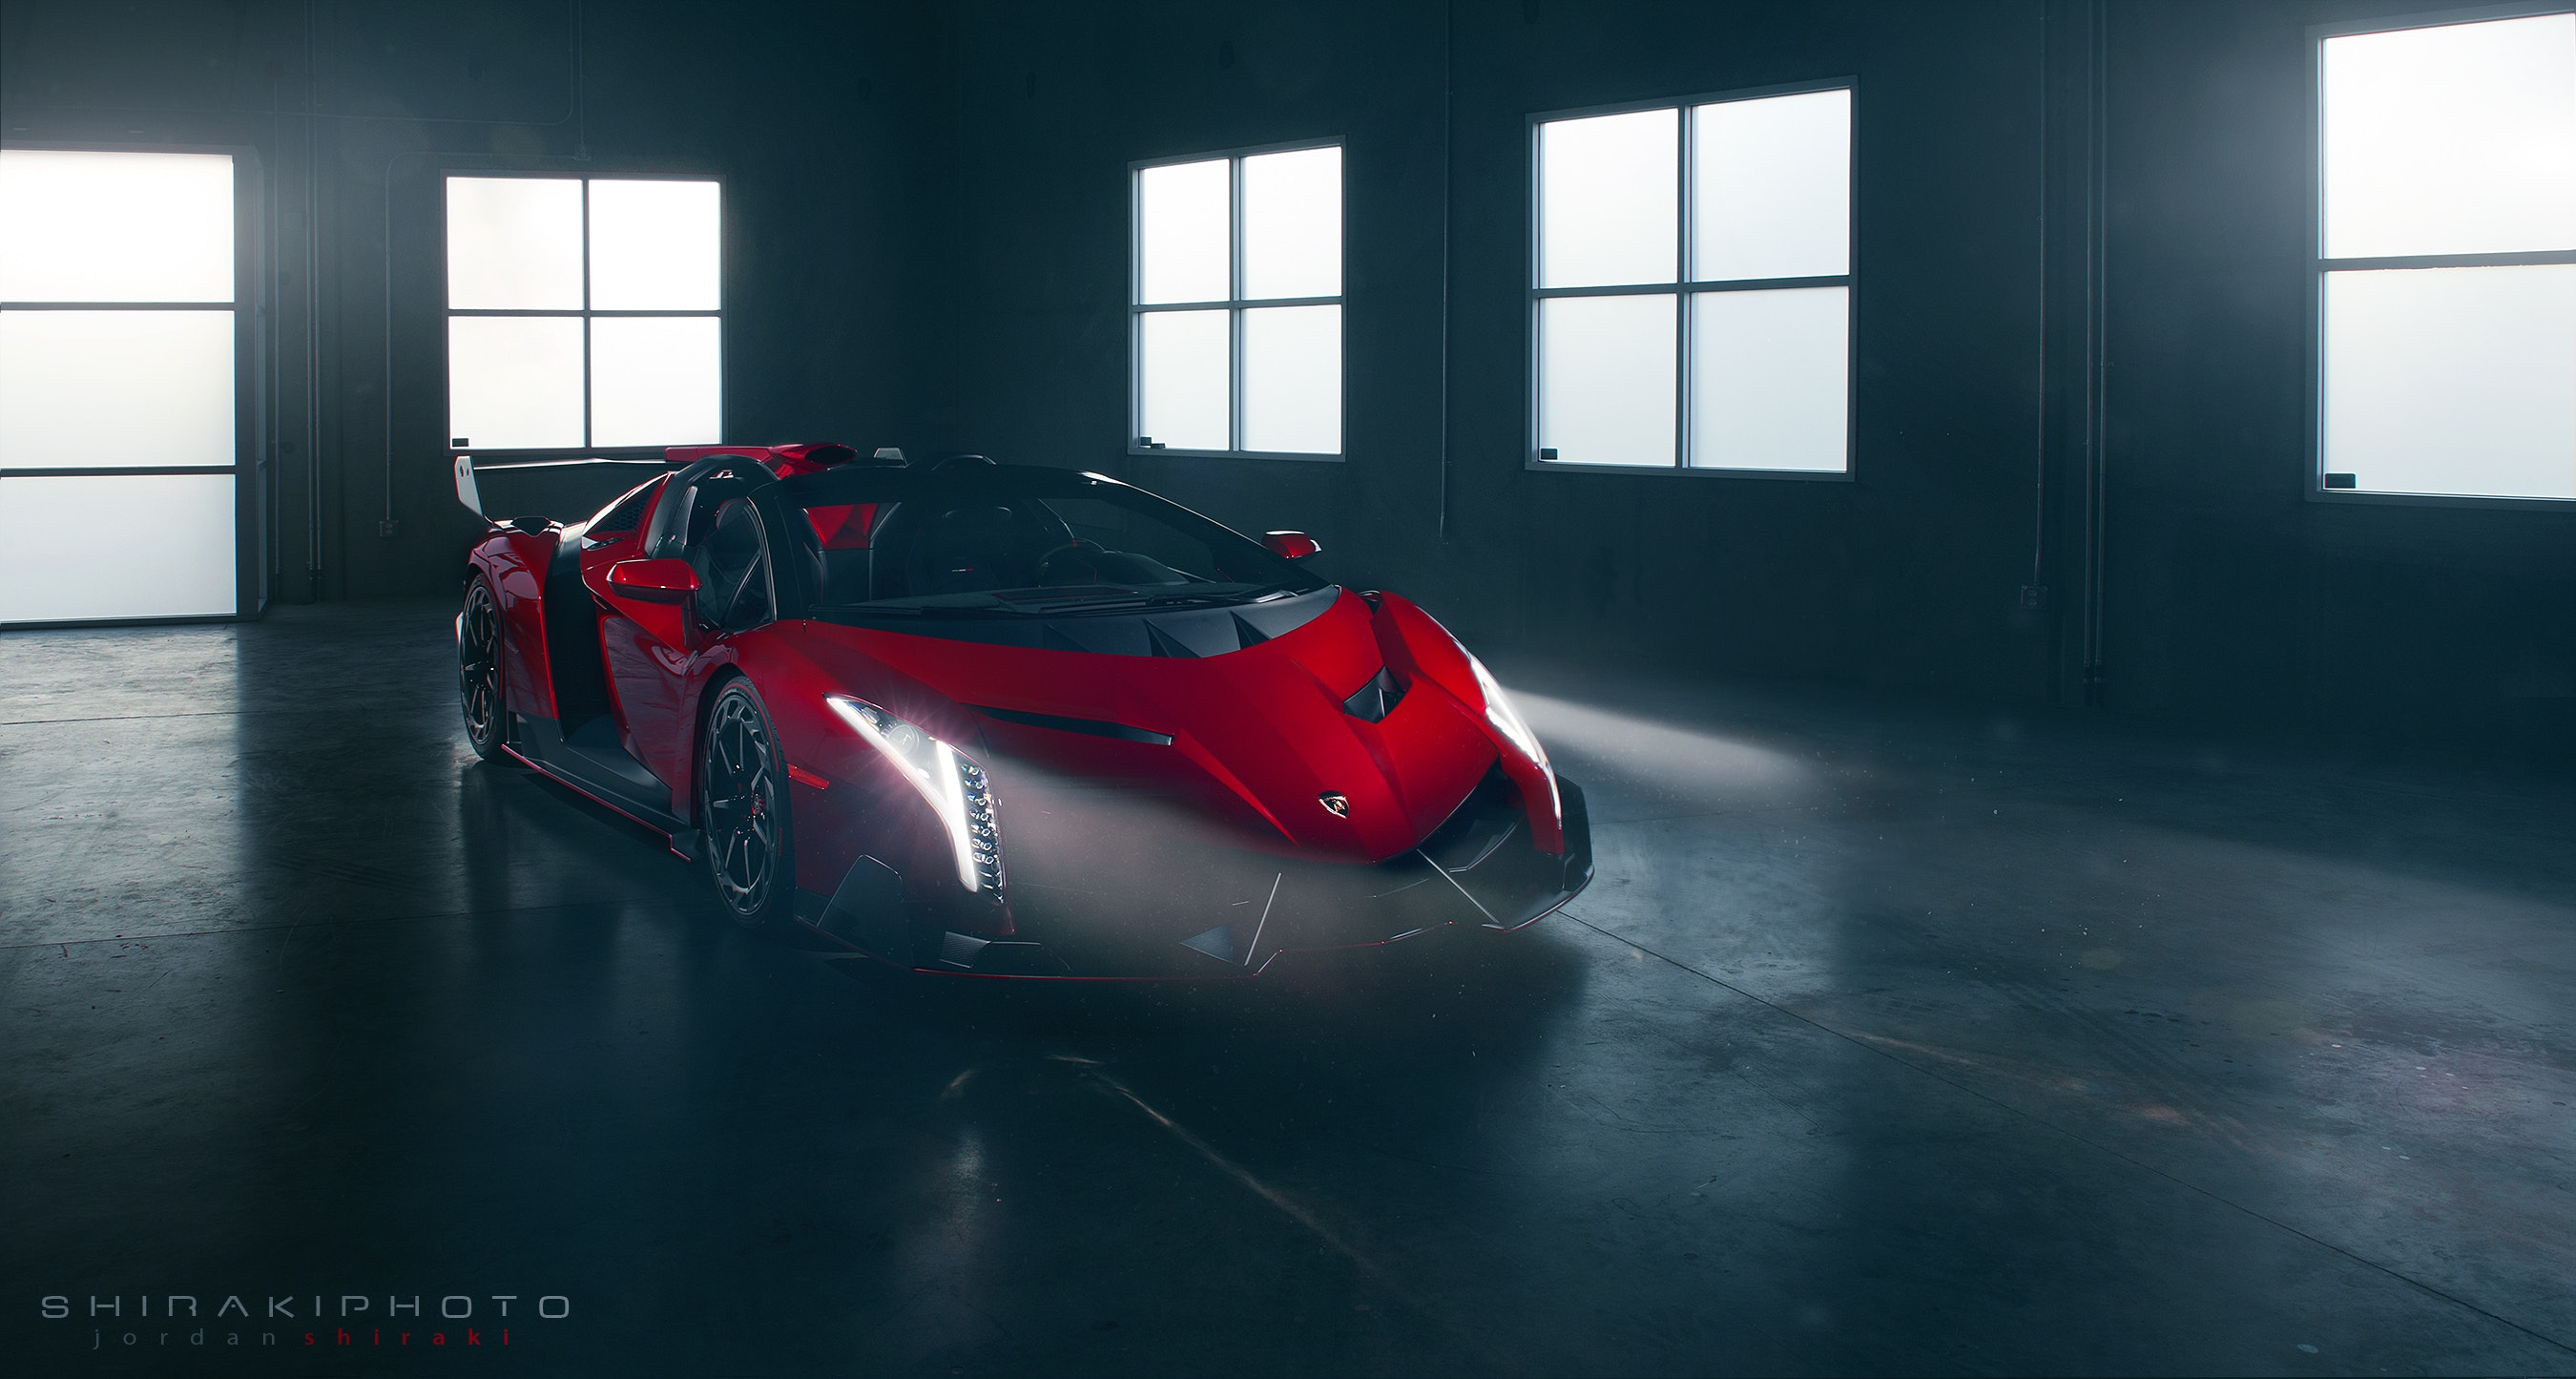 SHIRAKIPHOTO & DESIGN LLC - Veneno Roadster Headlights FINAL